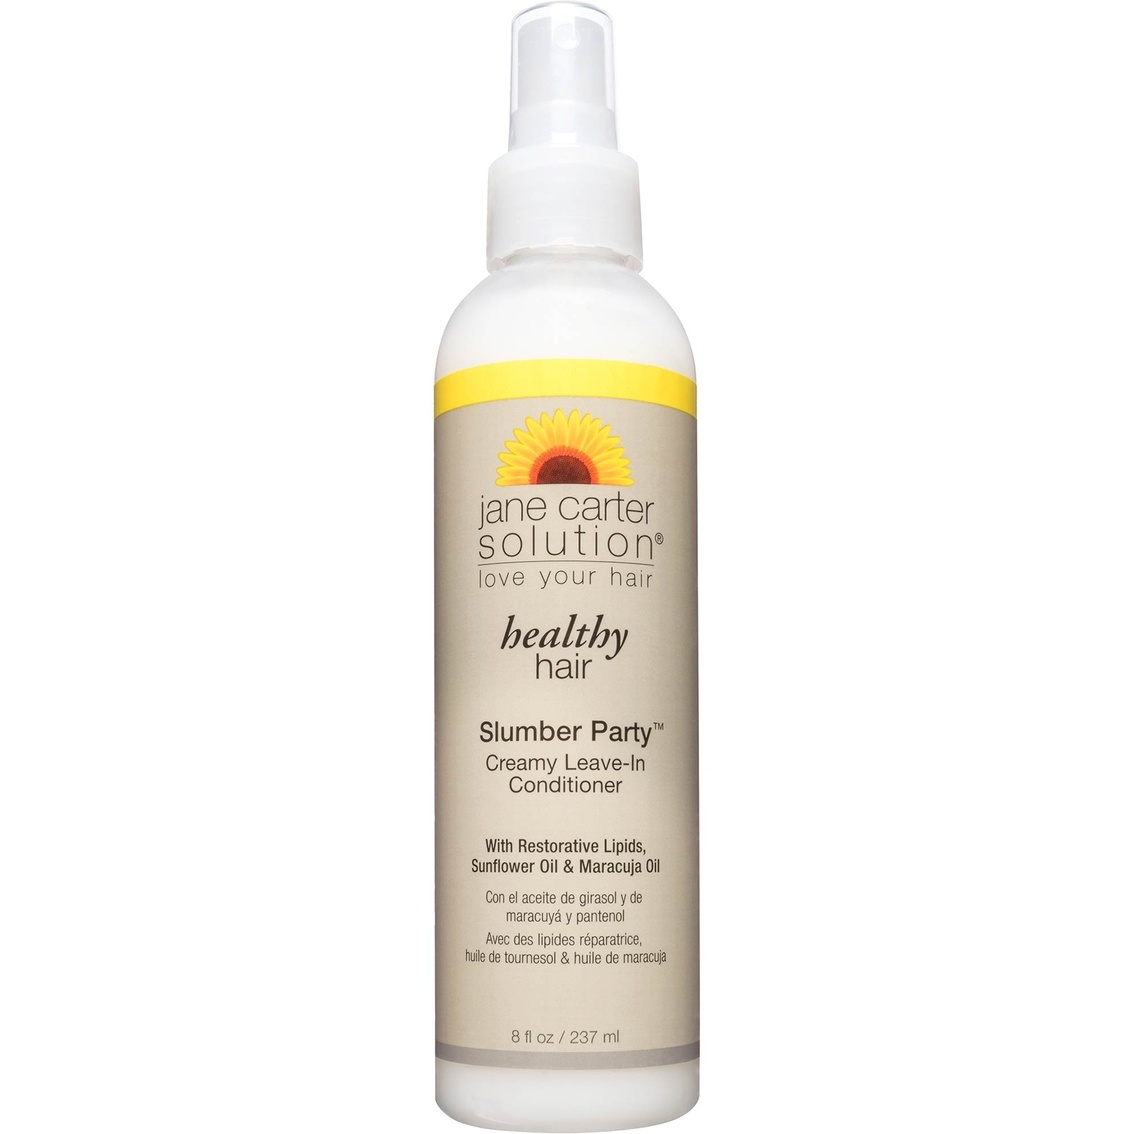 Slumber Party Creamy Leave-In Conditioner